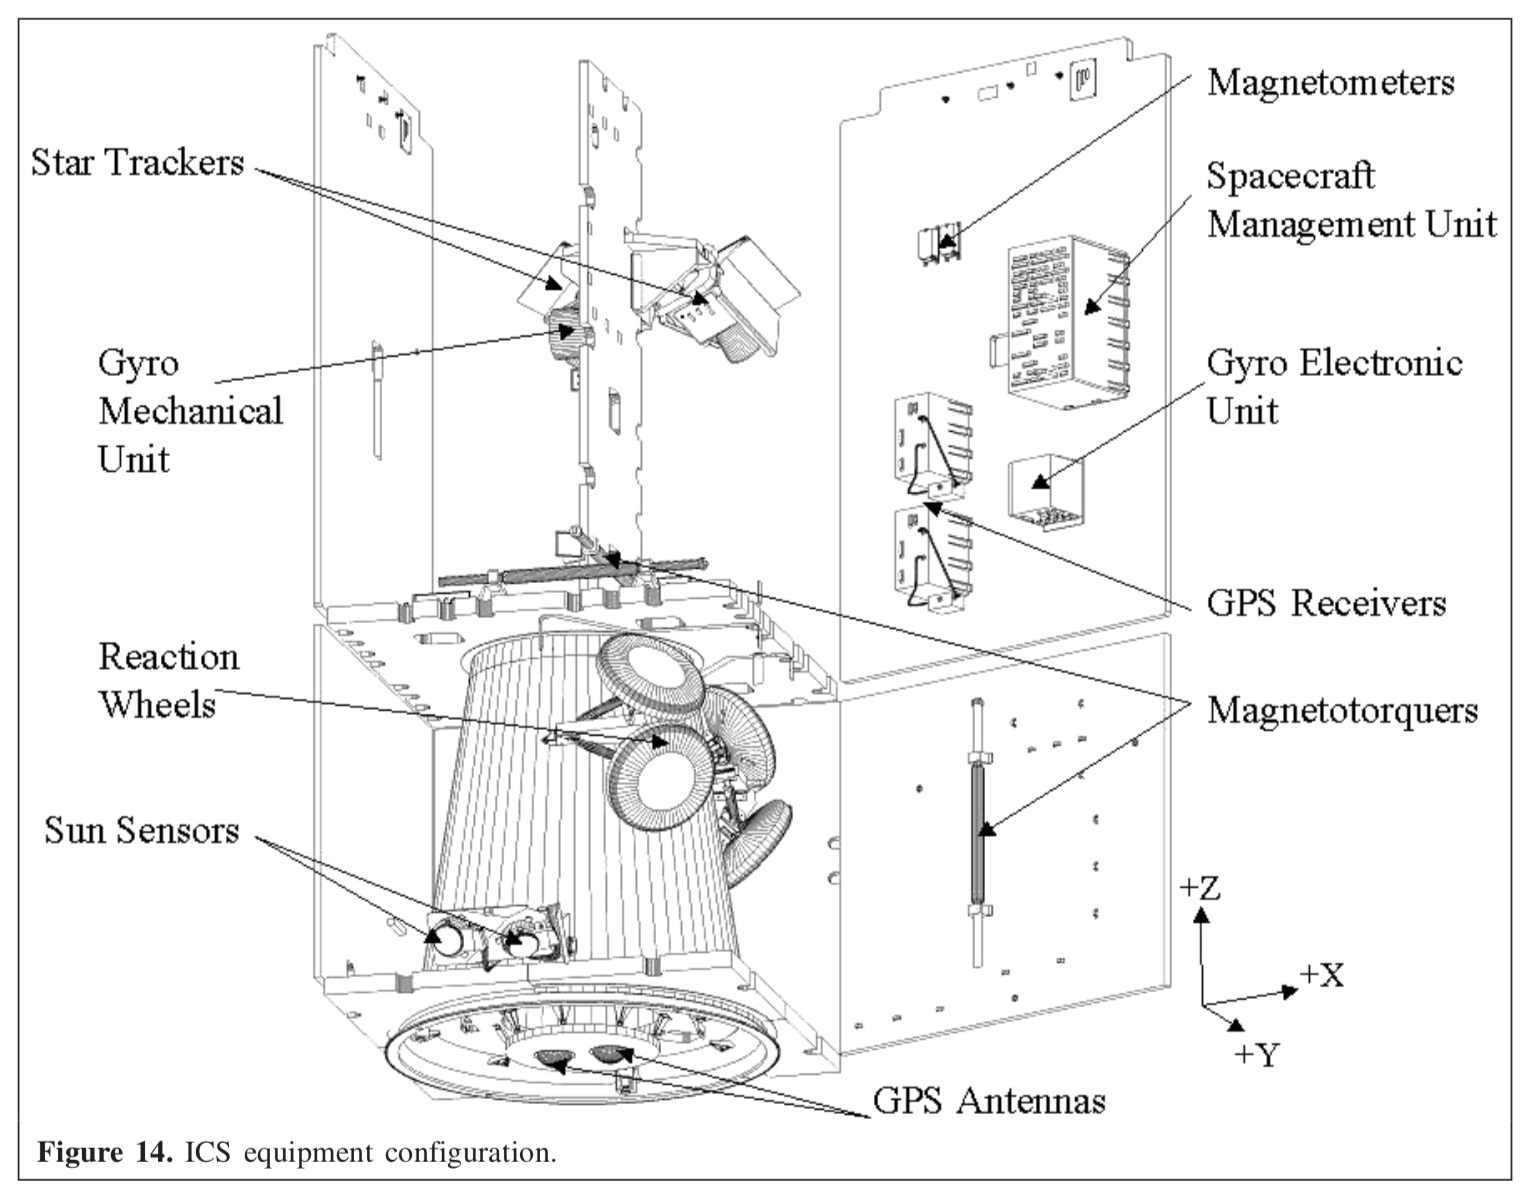 RADARSAT-2 Integrated Control Subsystem (ICS) diagram